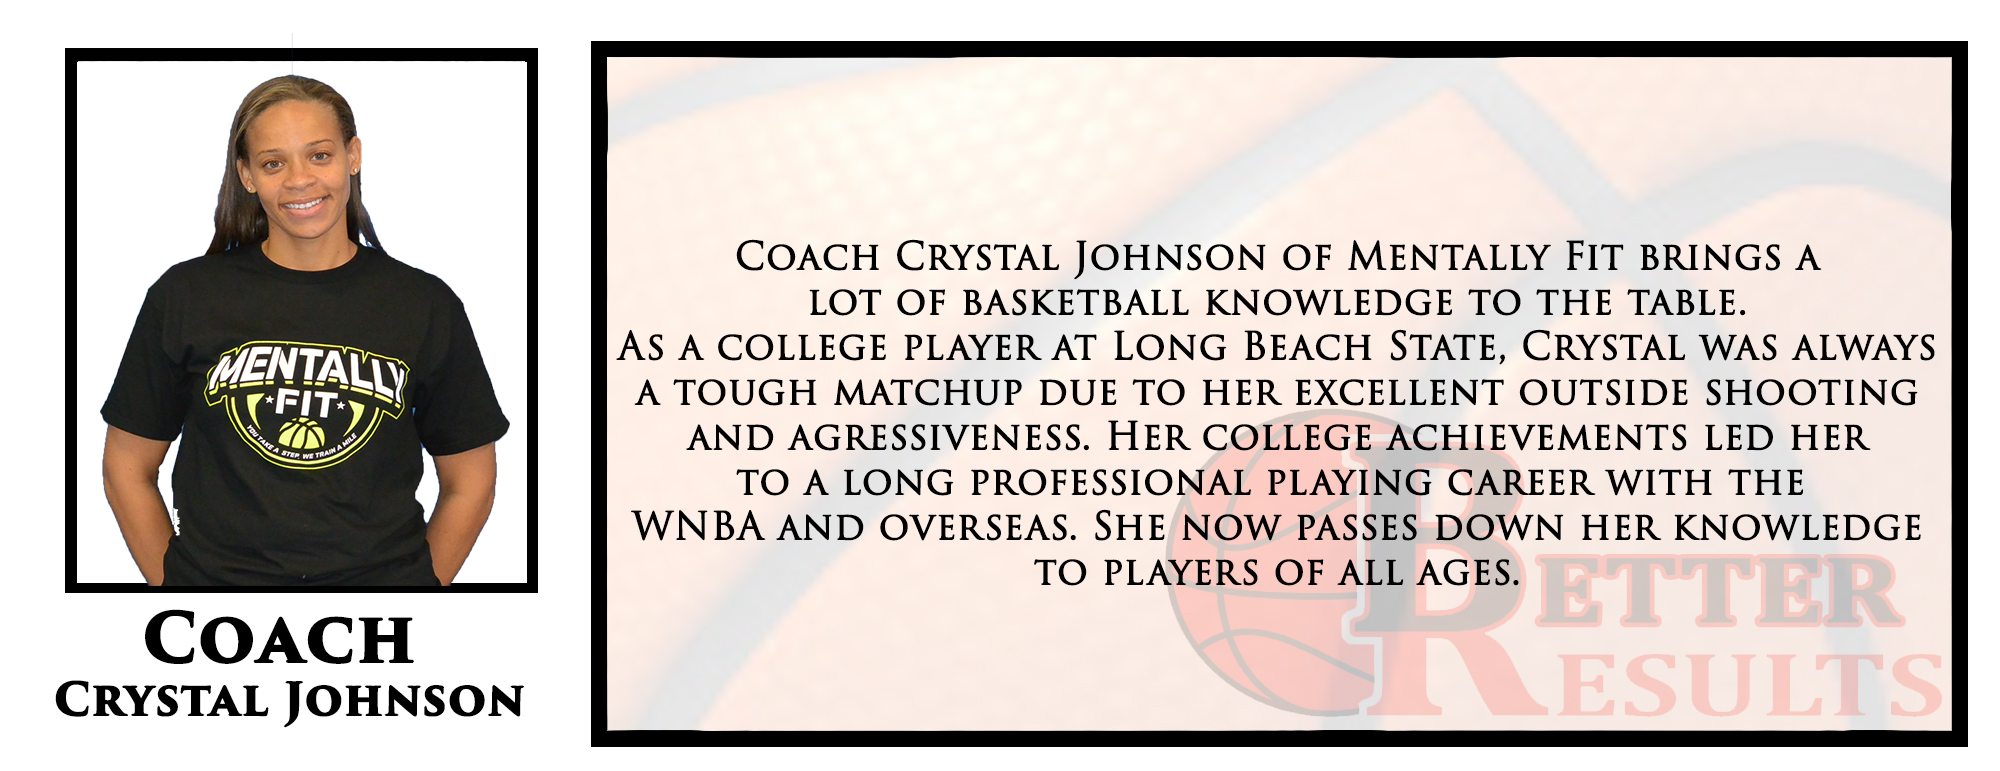 coach crystal